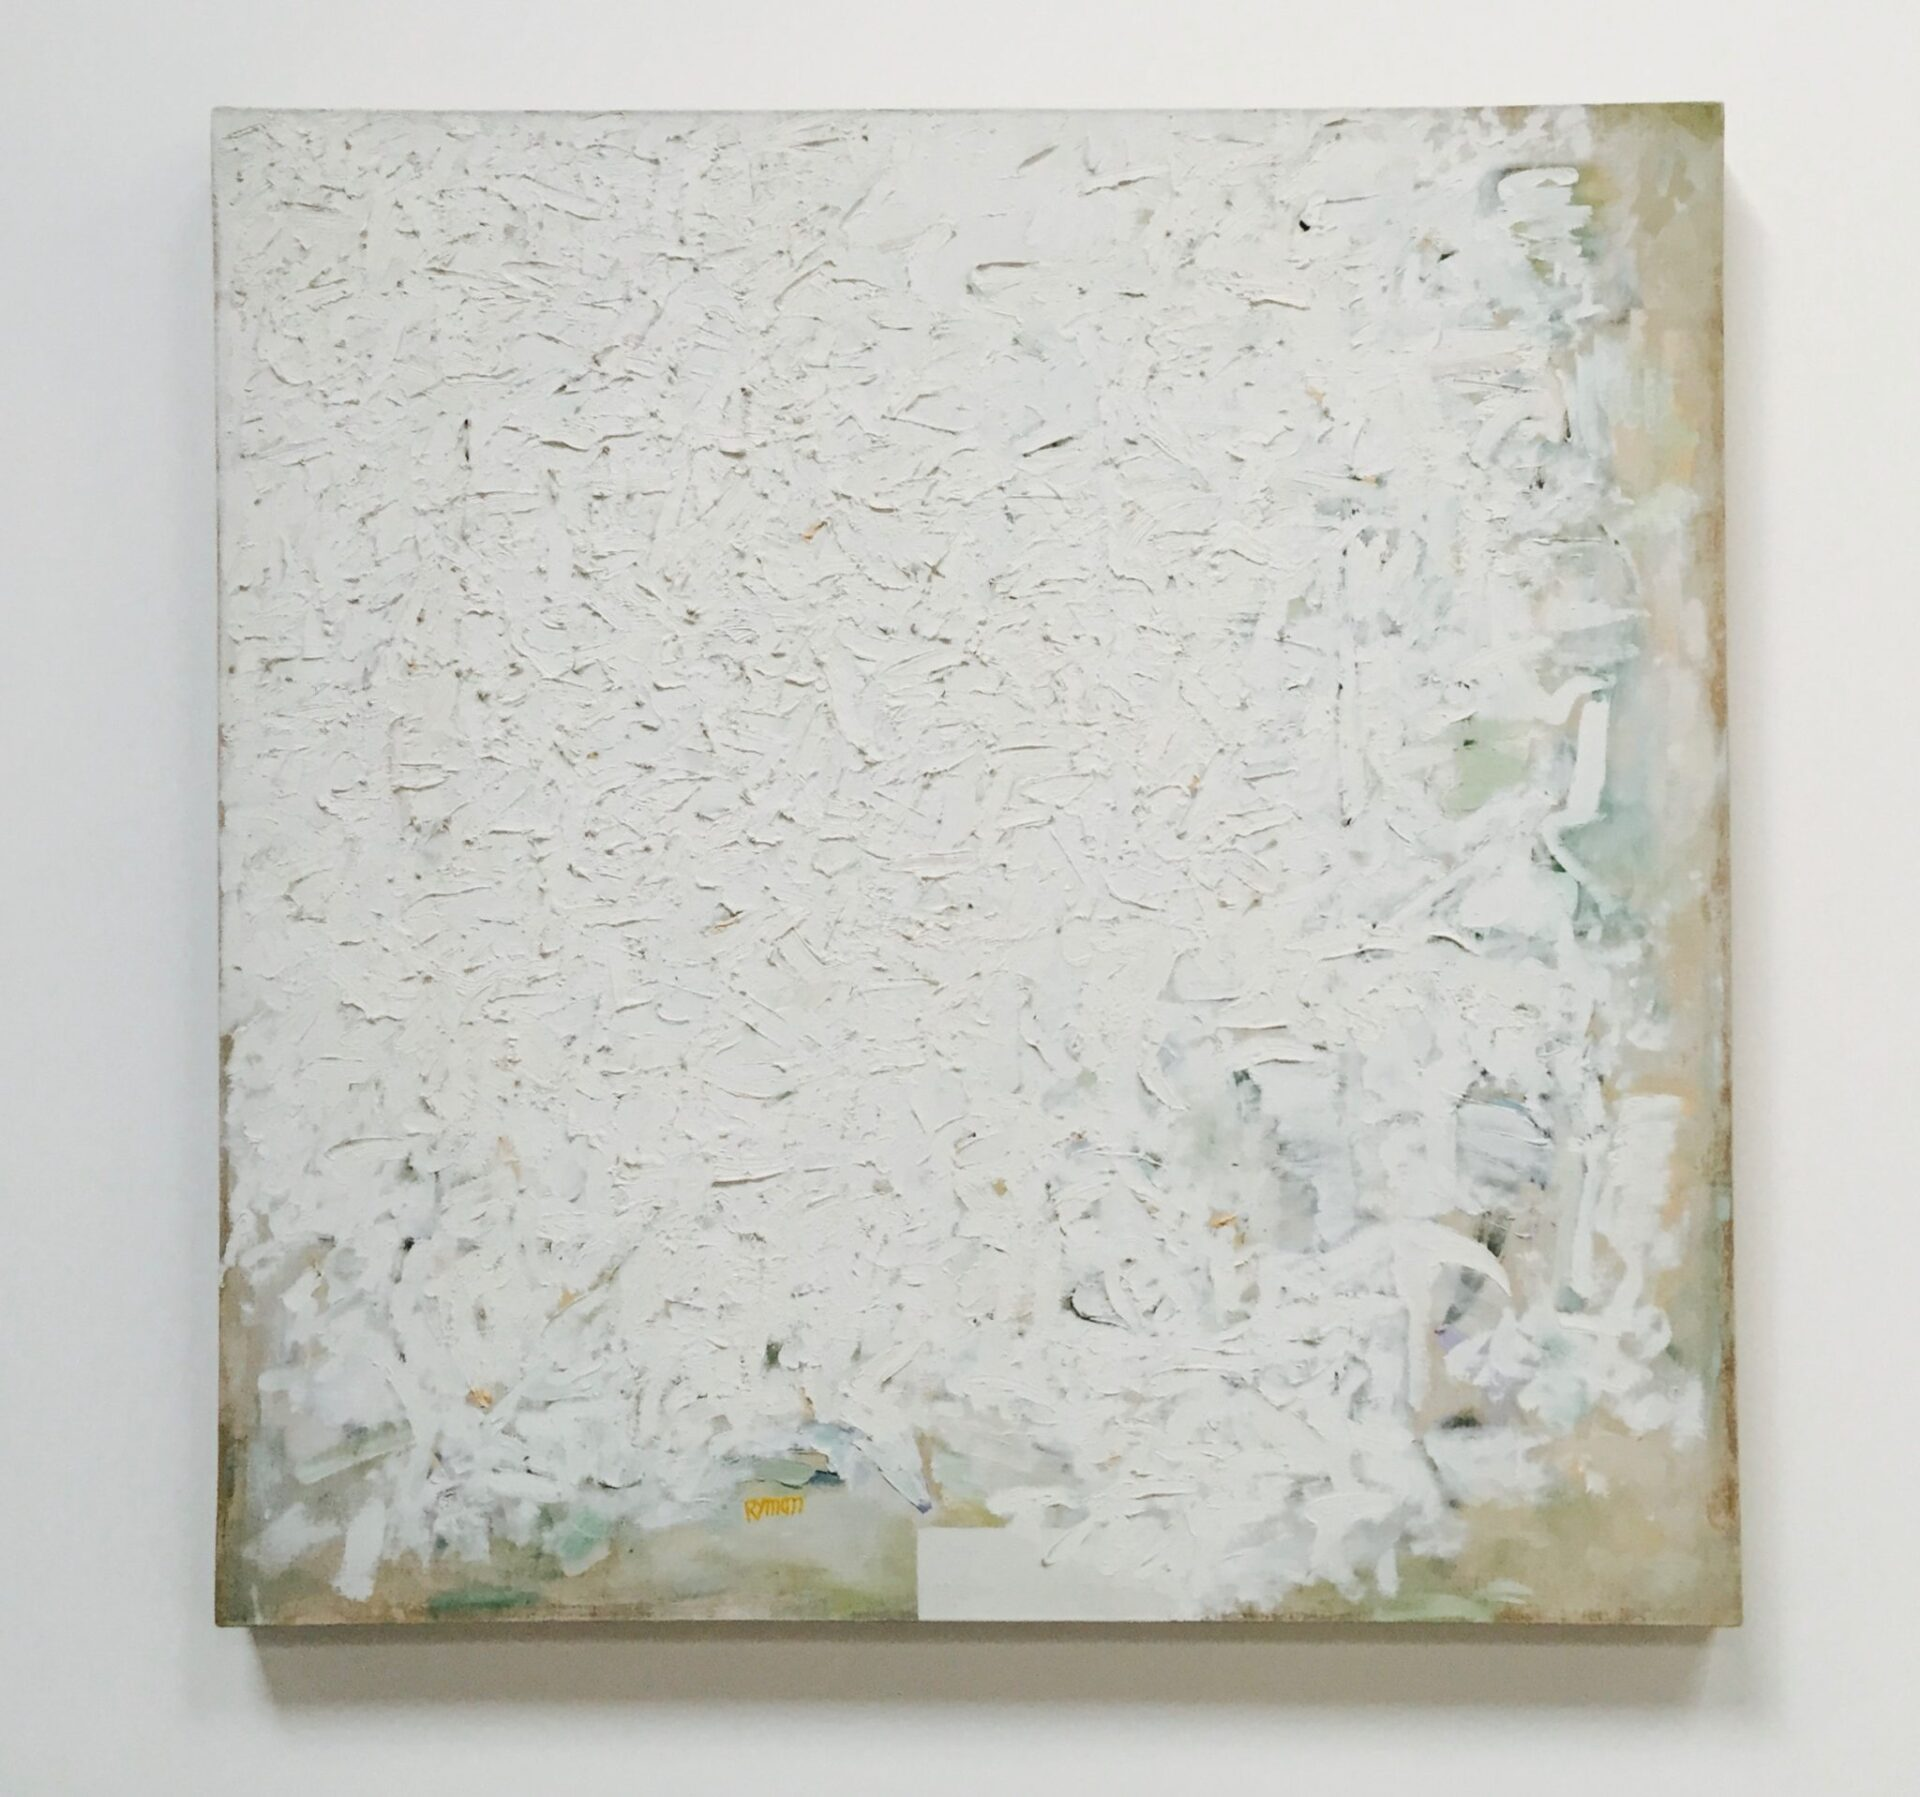 Robert Ryman. Untitled, c. 1960. Oil and gesso on linen. The Greenwich Collection, Ltd. On view at Dia:Chelsea, 545 West 22nd Street, December 9, 2015-June 18, 2016